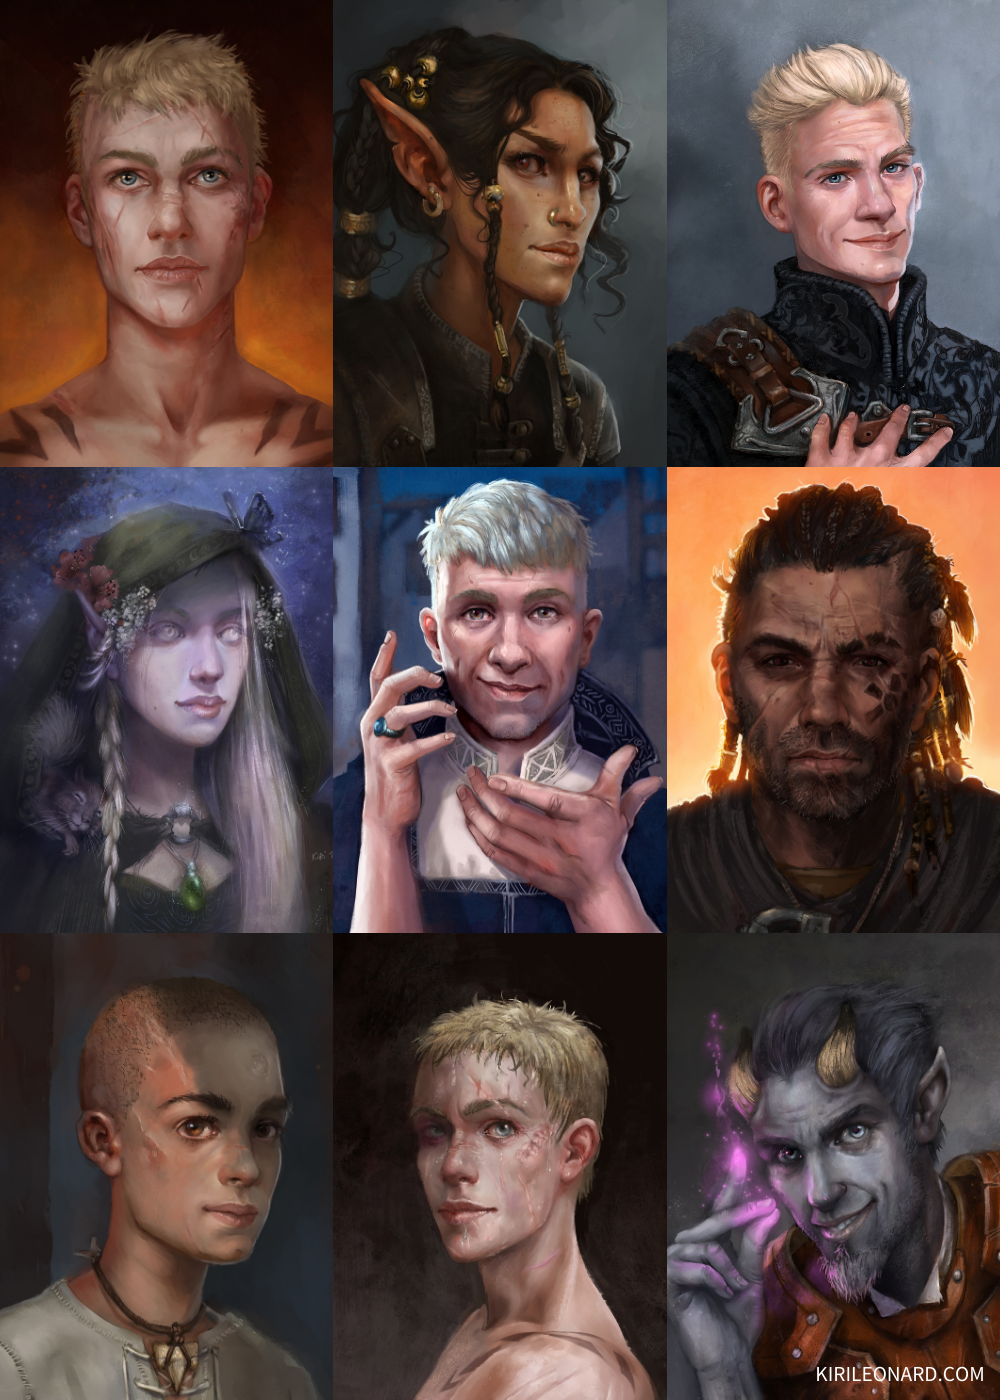 Locke the Legend Character Portraits by Kiri Leonard